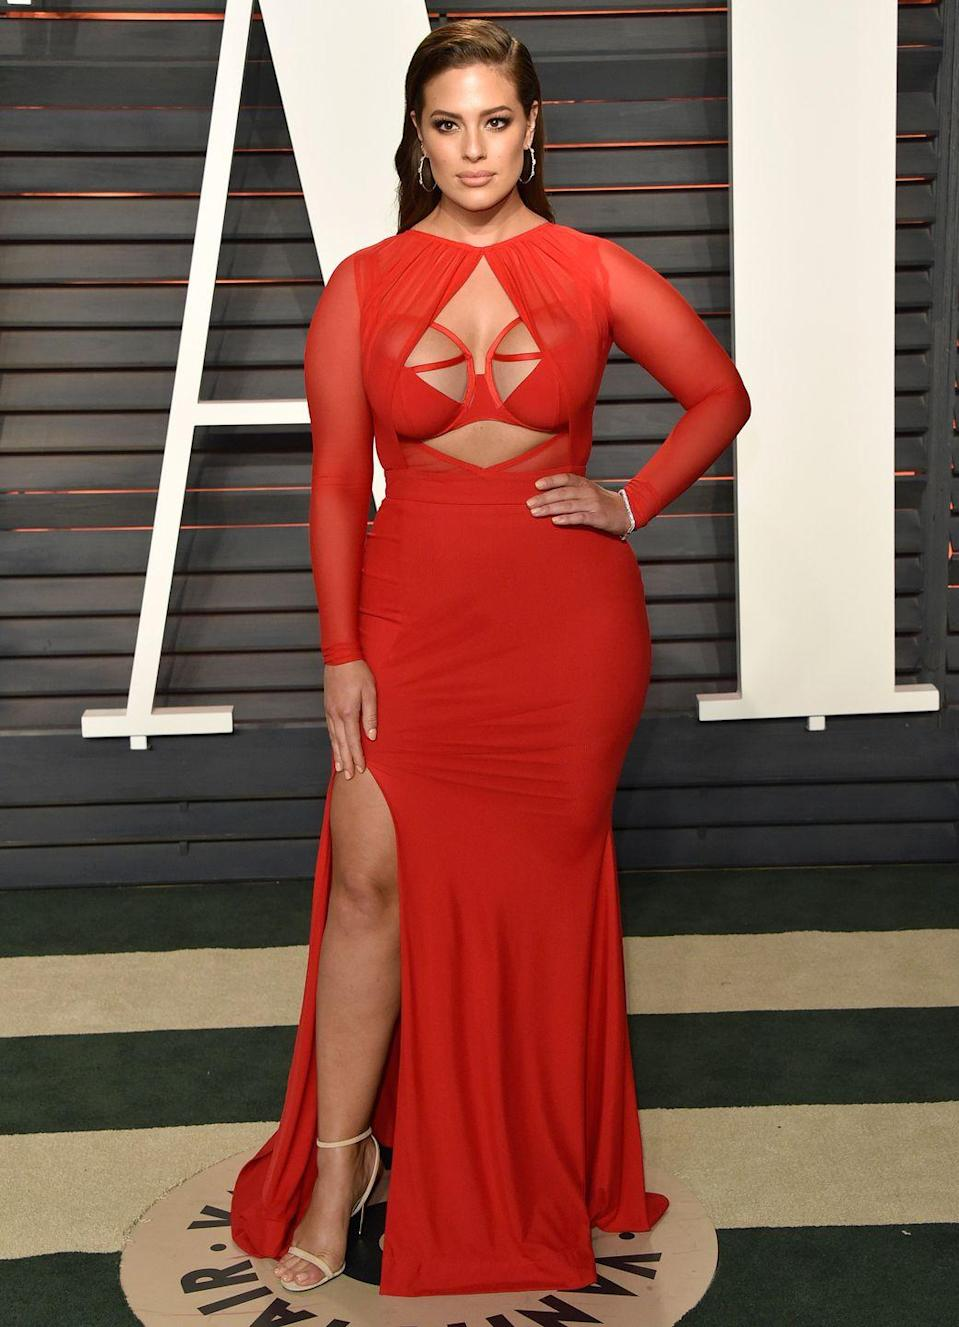 """<p>The model looked sizzling in a custom gown by Bao Tranchi at lthe 2016 Oscars, but admitted that finding a dress felt like a job in itself. </p><p>""""I've just been insanely busy—I mean first of all trying to find a dress for the Oscars, girls my size, these girls this size [gesturing to her chest], I mean it has been a whole job in itself. So I am happy tonight with my outfit,"""" Graham told <a href=""""https://twitter.com/susanasaurusrex/status/704107931302764544?"""" rel=""""nofollow noopener"""" target=""""_blank"""" data-ylk=""""slk:E!'s Giuliana Rancic"""" class=""""link rapid-noclick-resp""""><em>E!</em>'s Giuliana Rancic</a><span class=""""redactor-invisible-space""""> on the red carpet. </span></p>"""